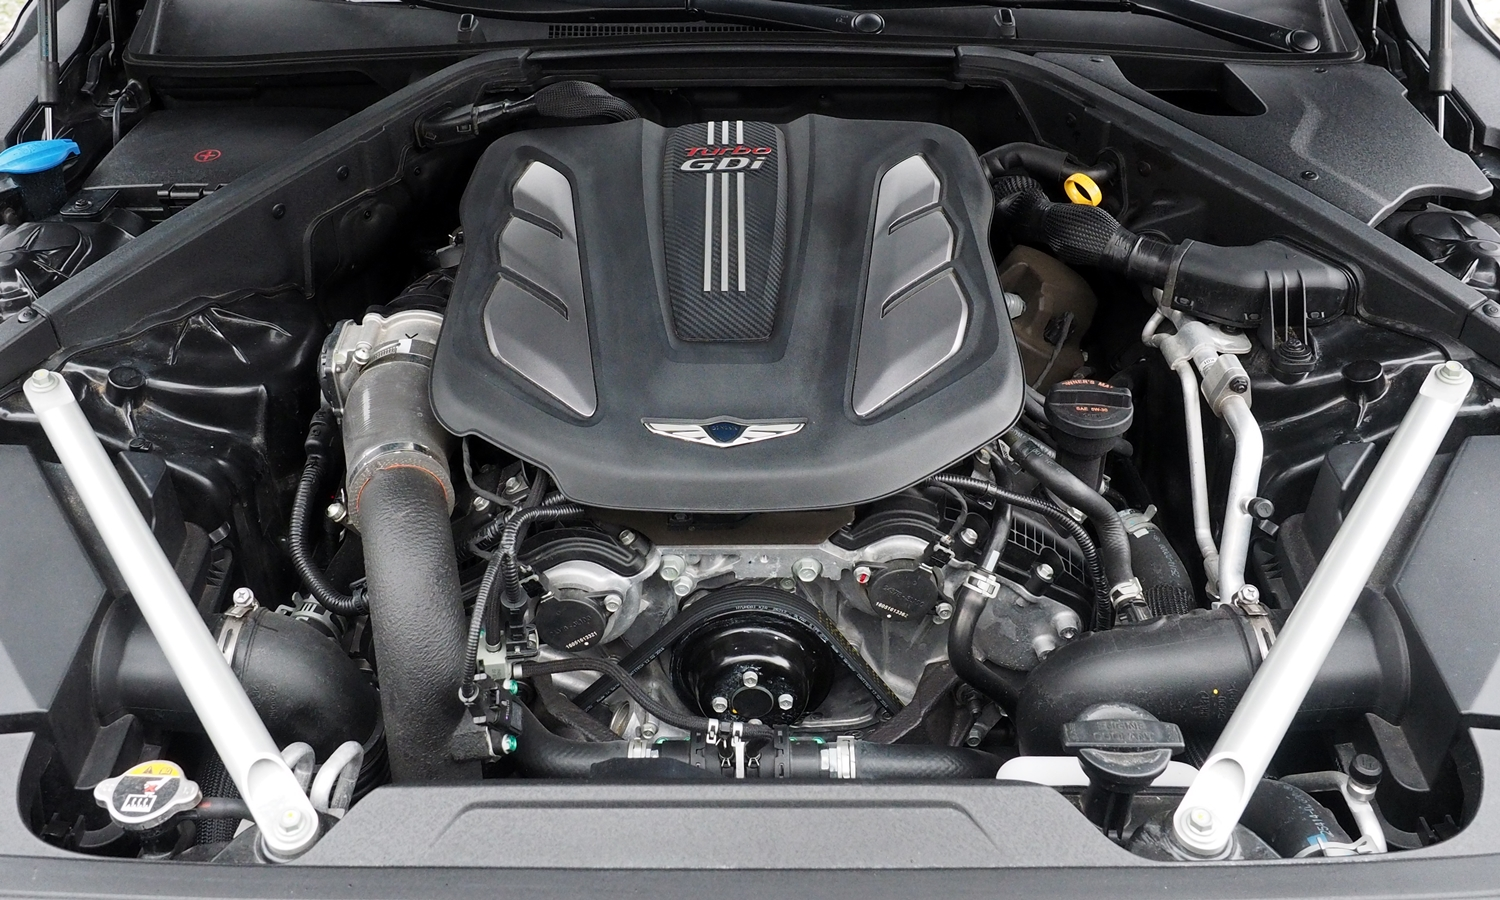 Genesis G90 Photos: 2017 Genesis G90 engine